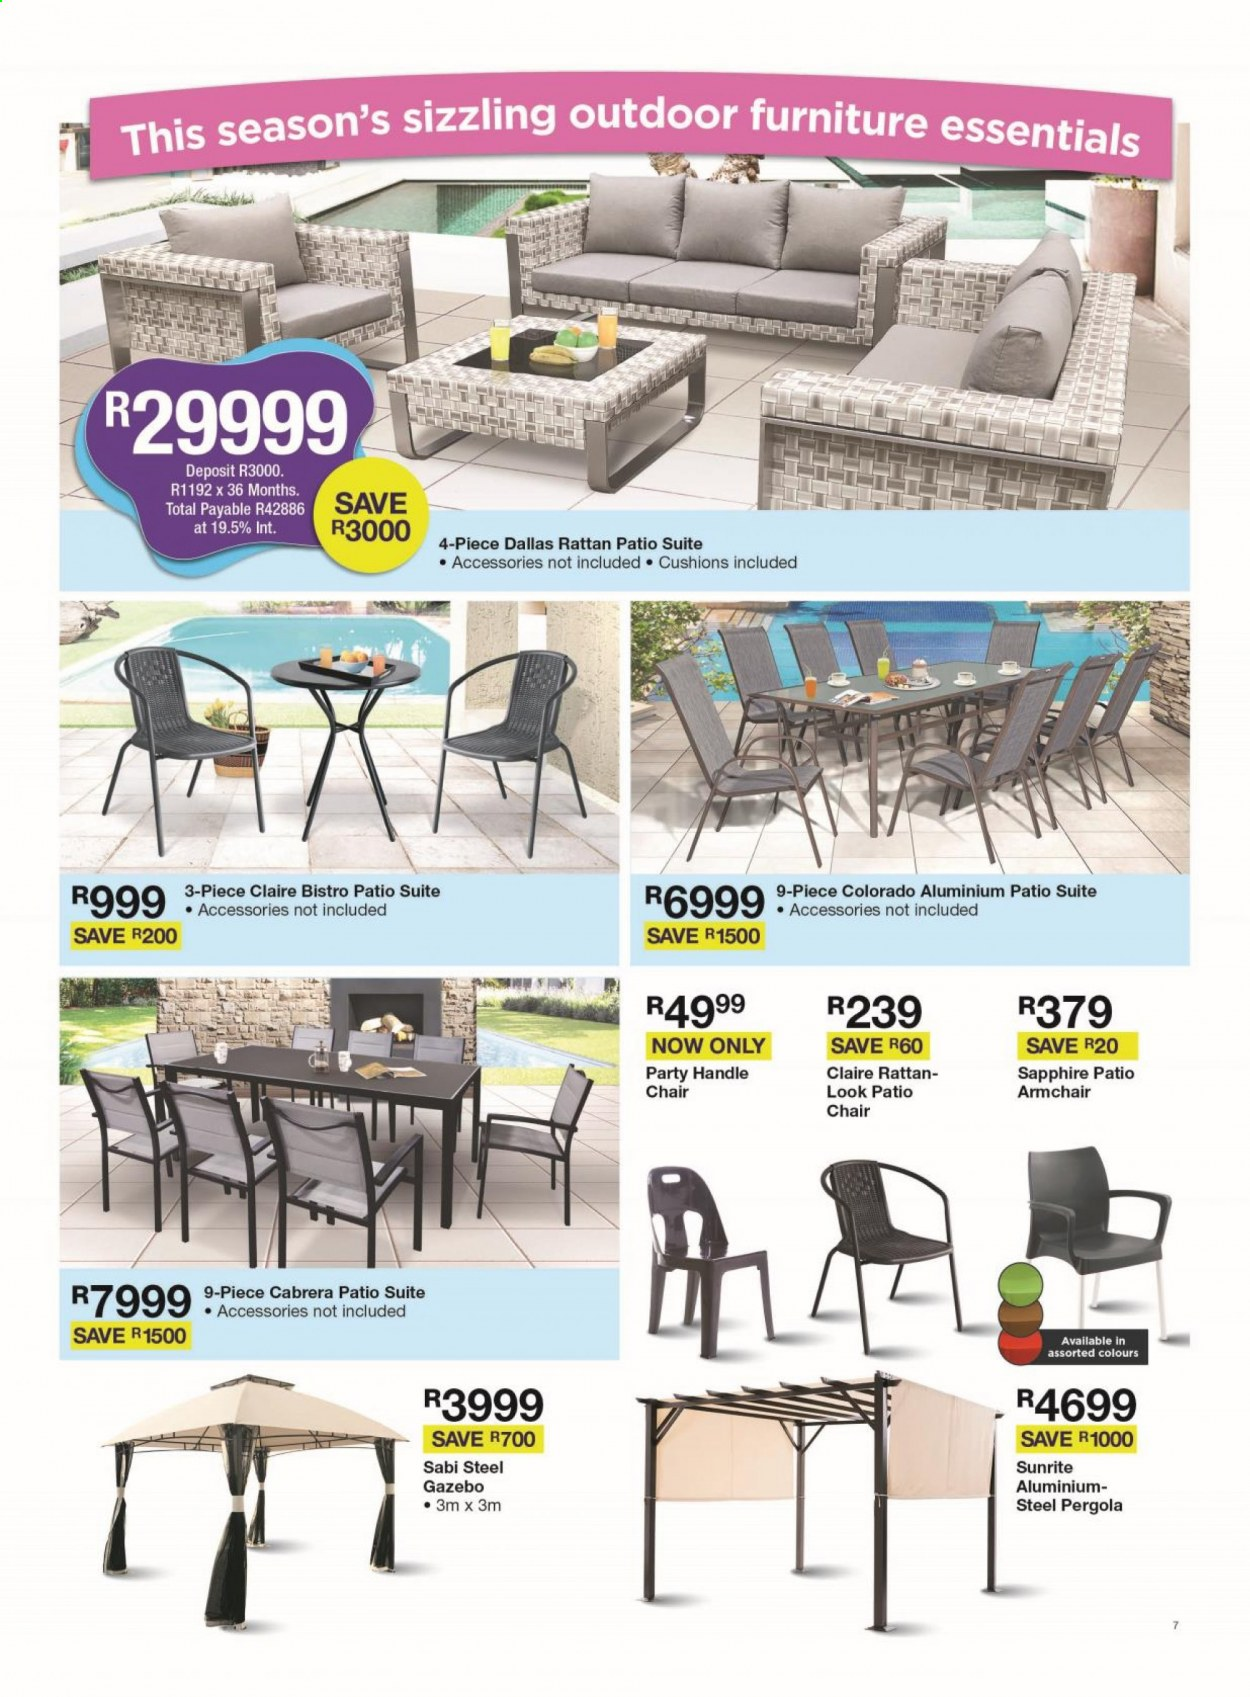 House & Home catalogue  - 02.22.2021 - 03.02.2021. Page 7.